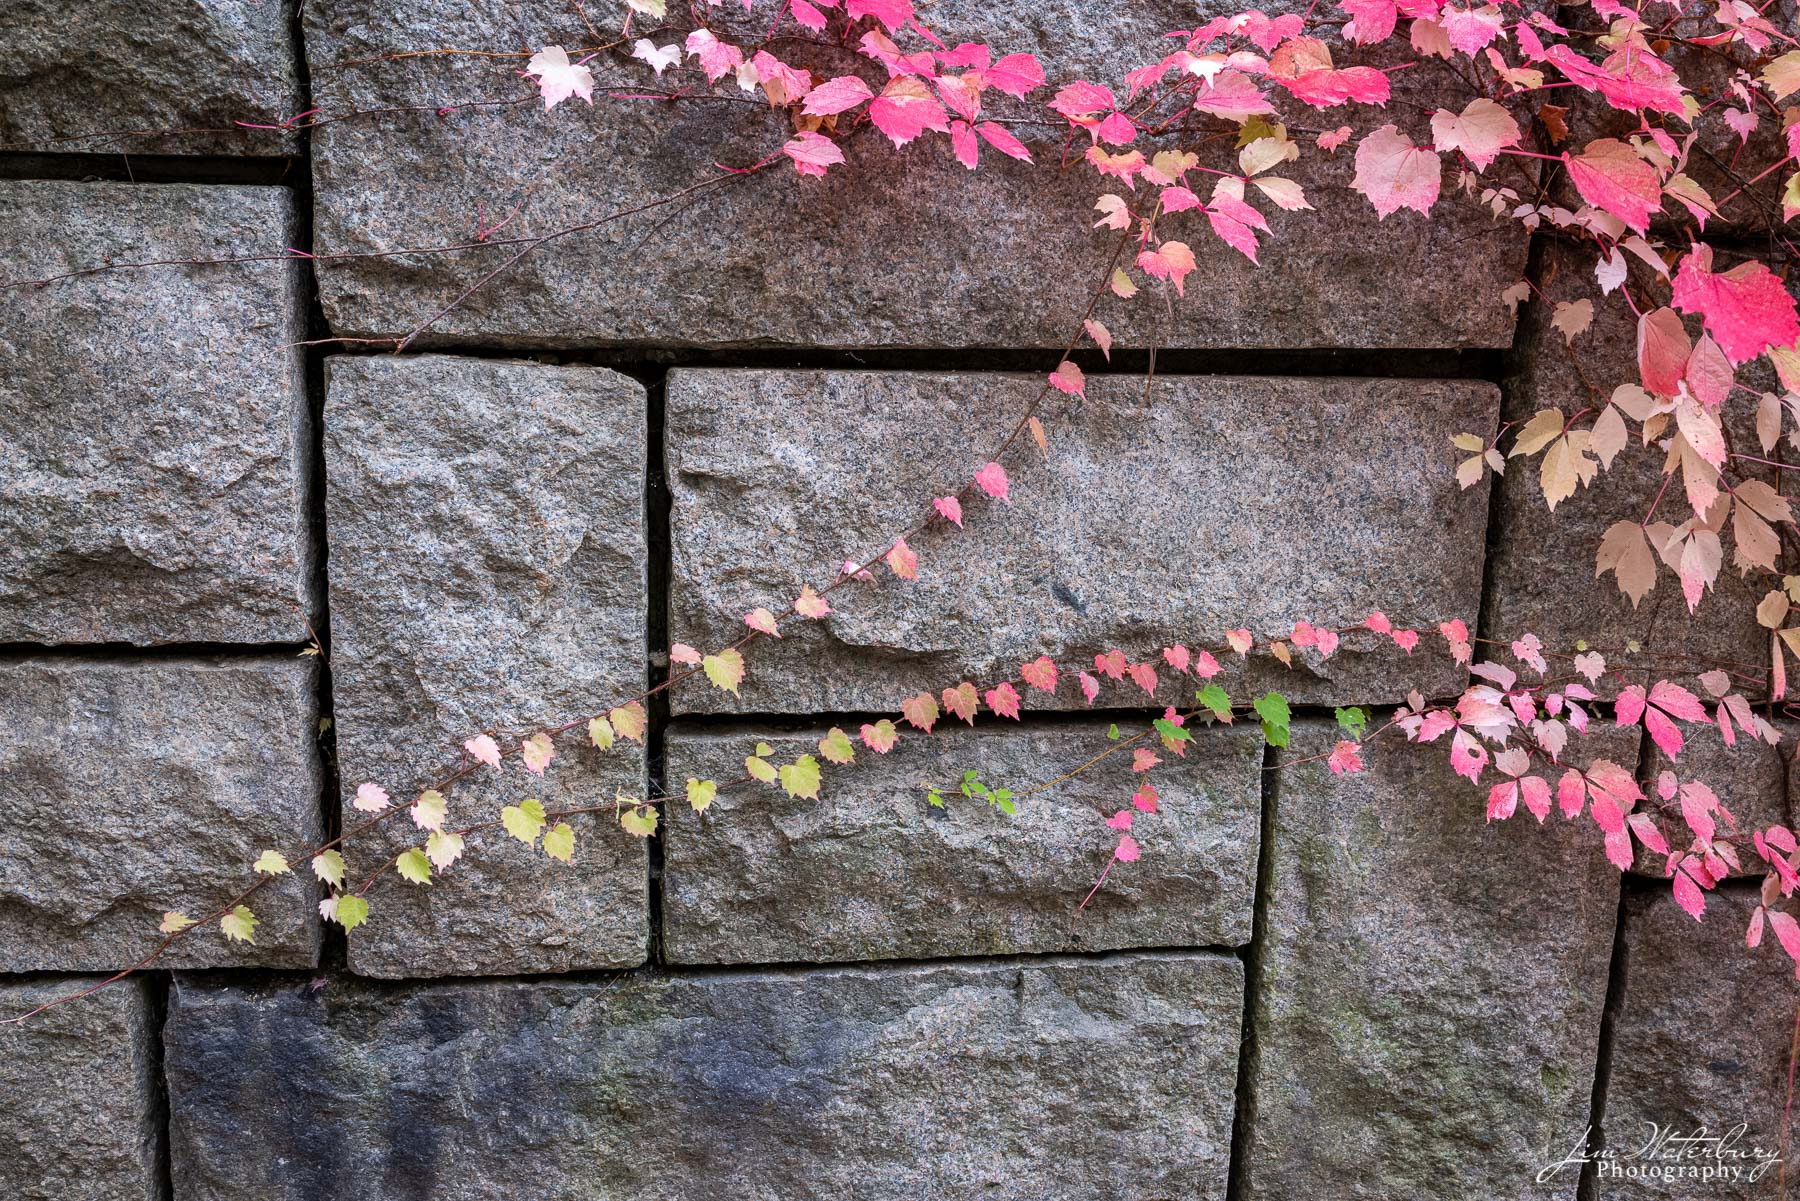 Ivy on a wall in Seal Harbor shows off the delicate fall  reds and pinks of the ivy.